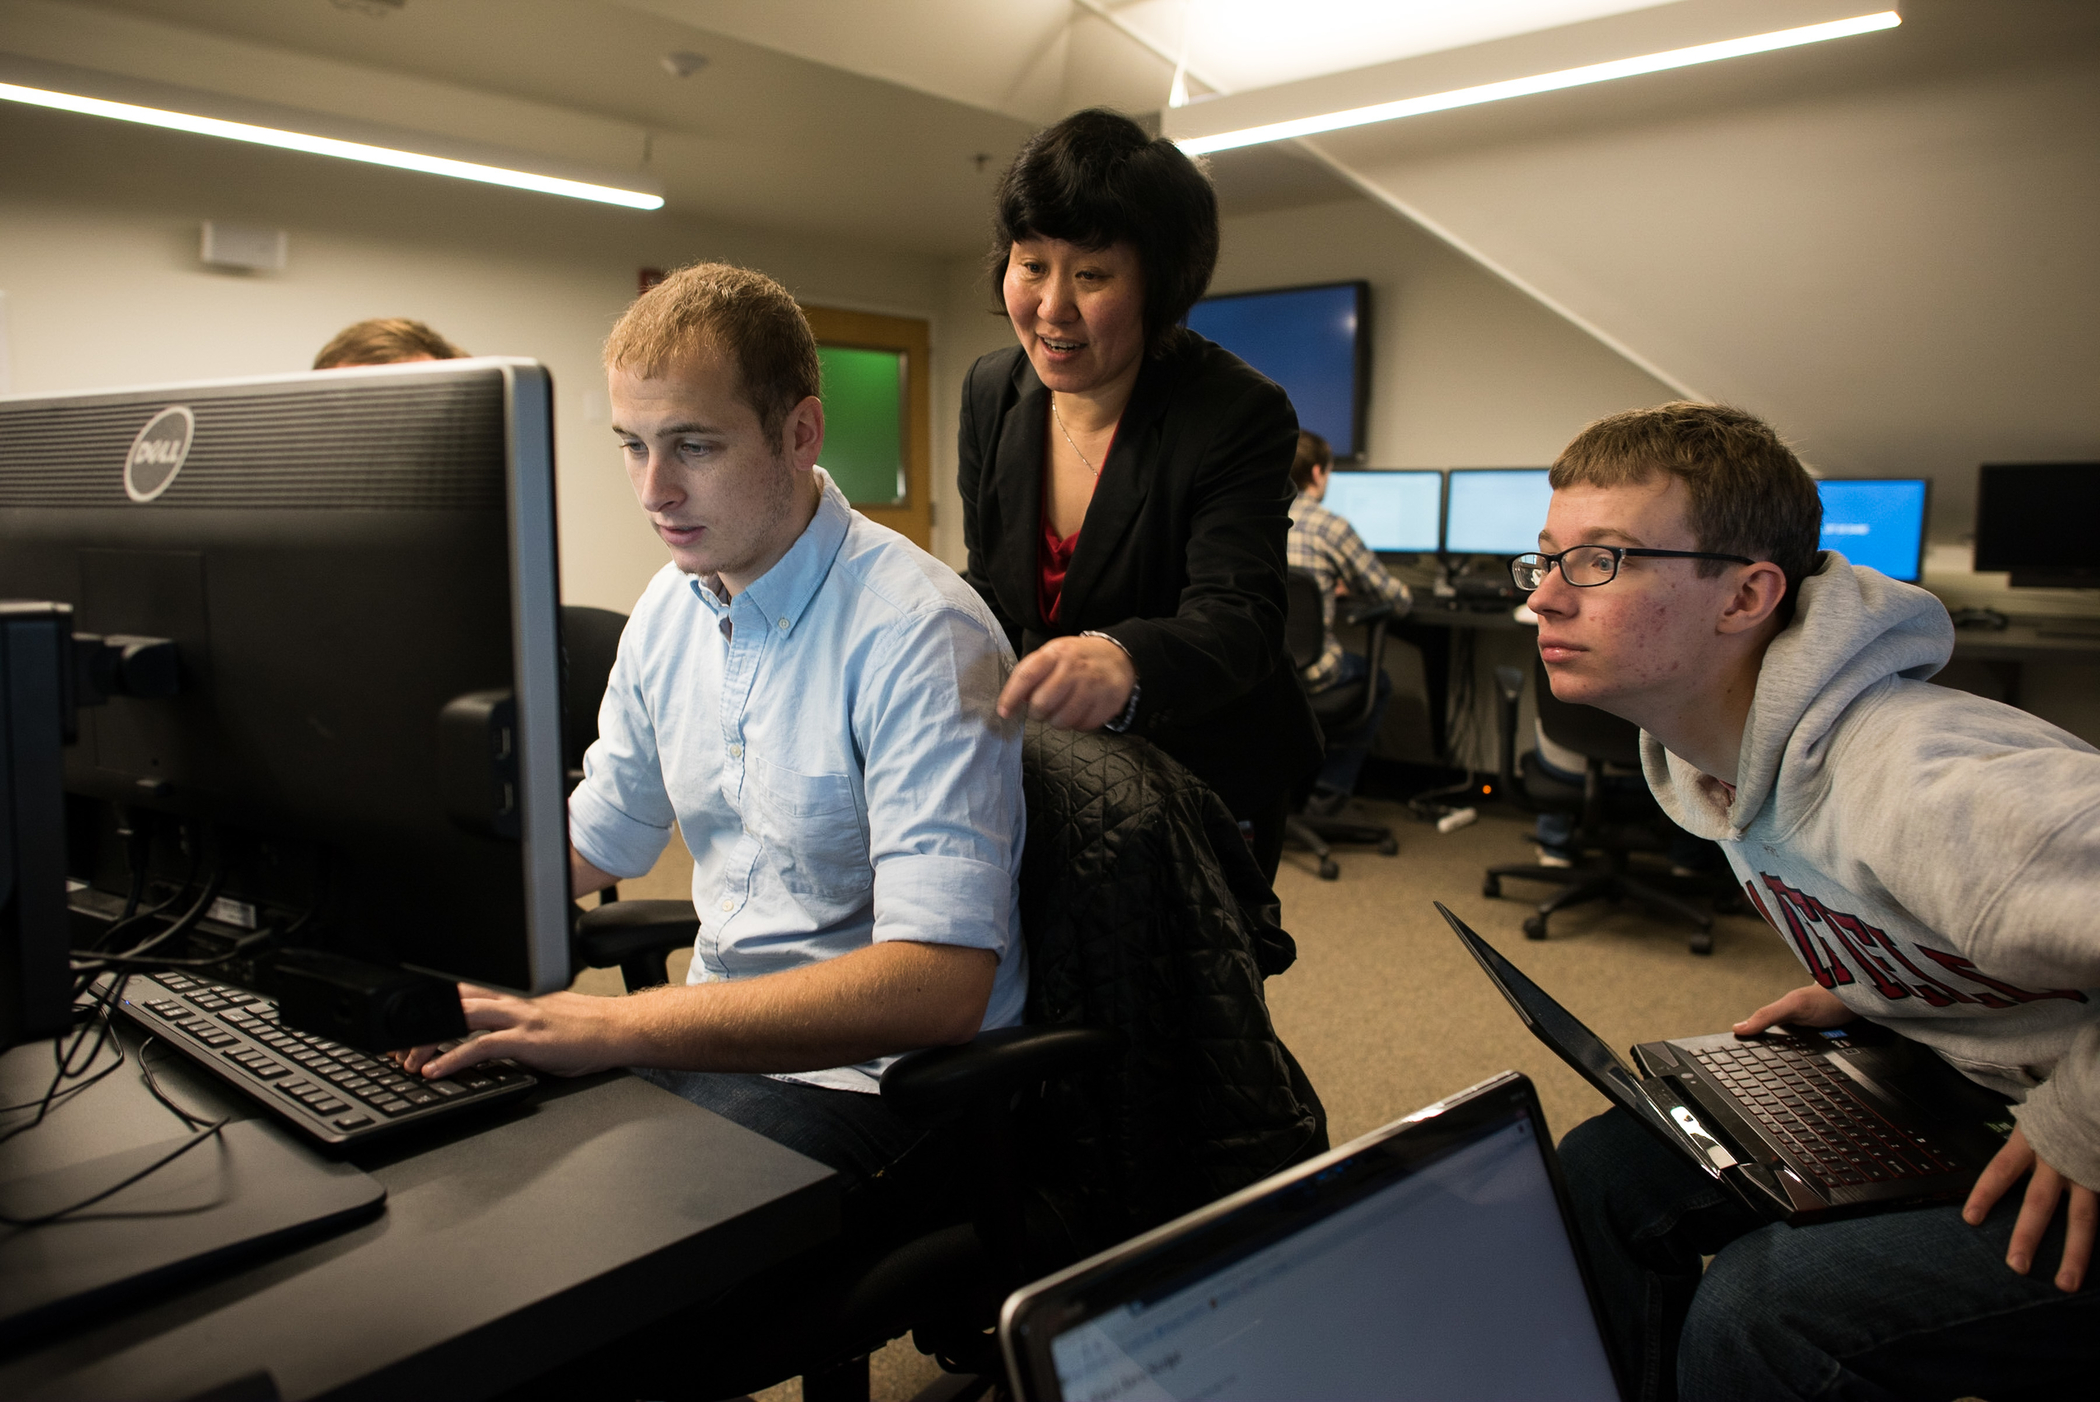 A female faculty member coaches a male student working at a computer from behind, while another male student looks on